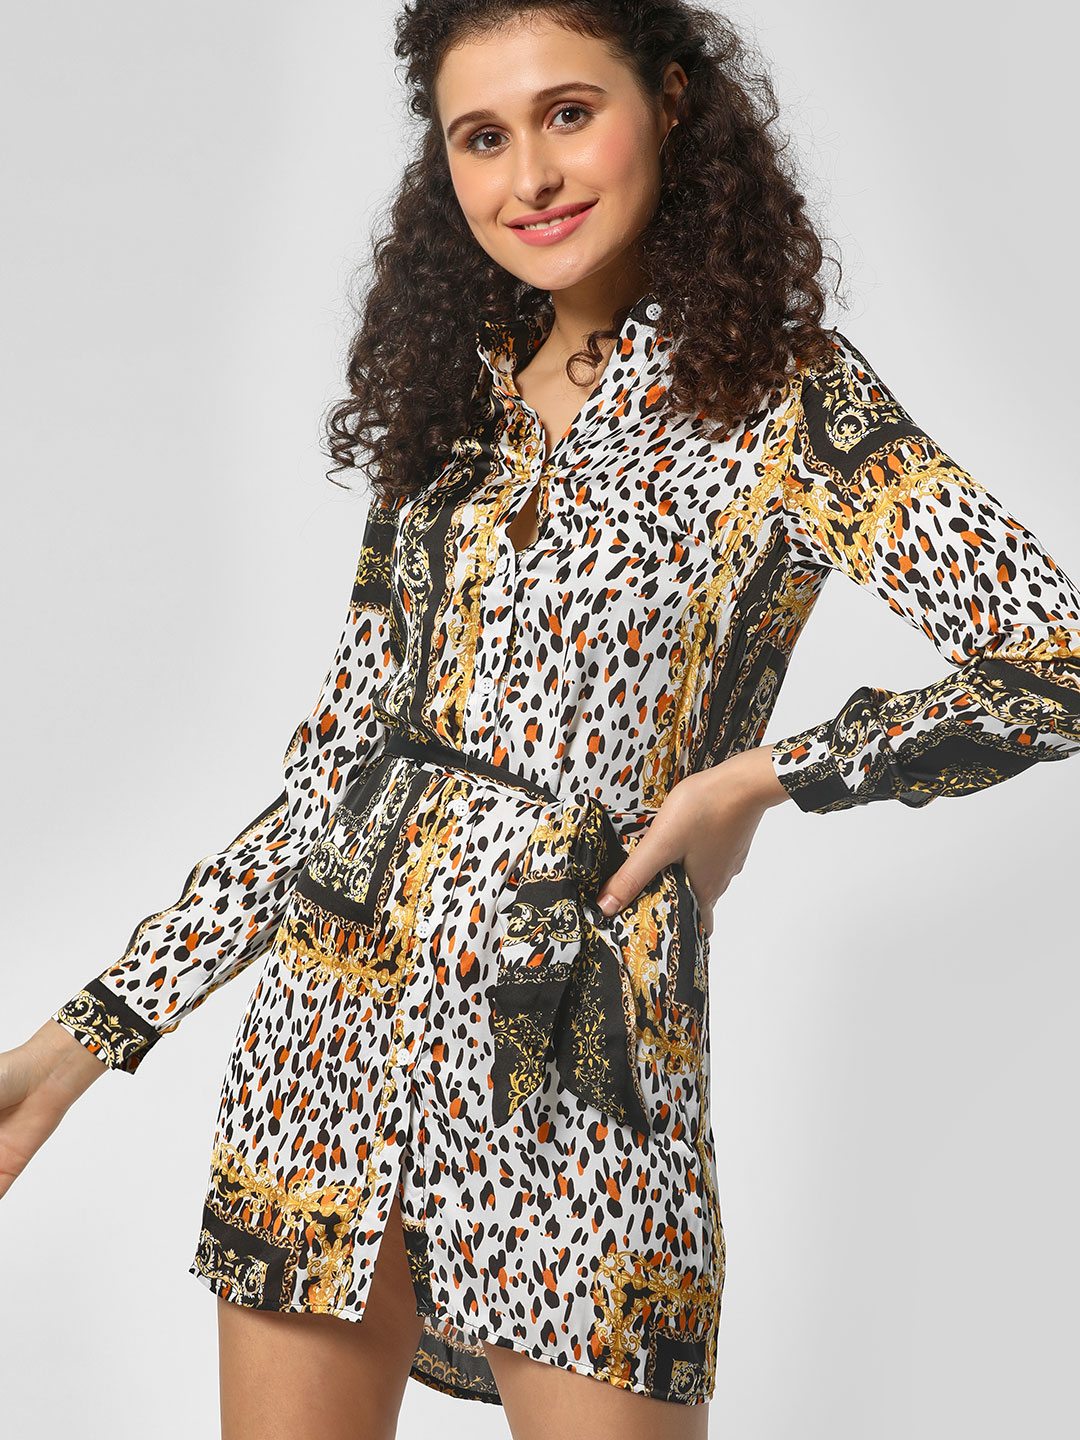 Moguland Black Leopard & Baroque Print Shirt Dress 1